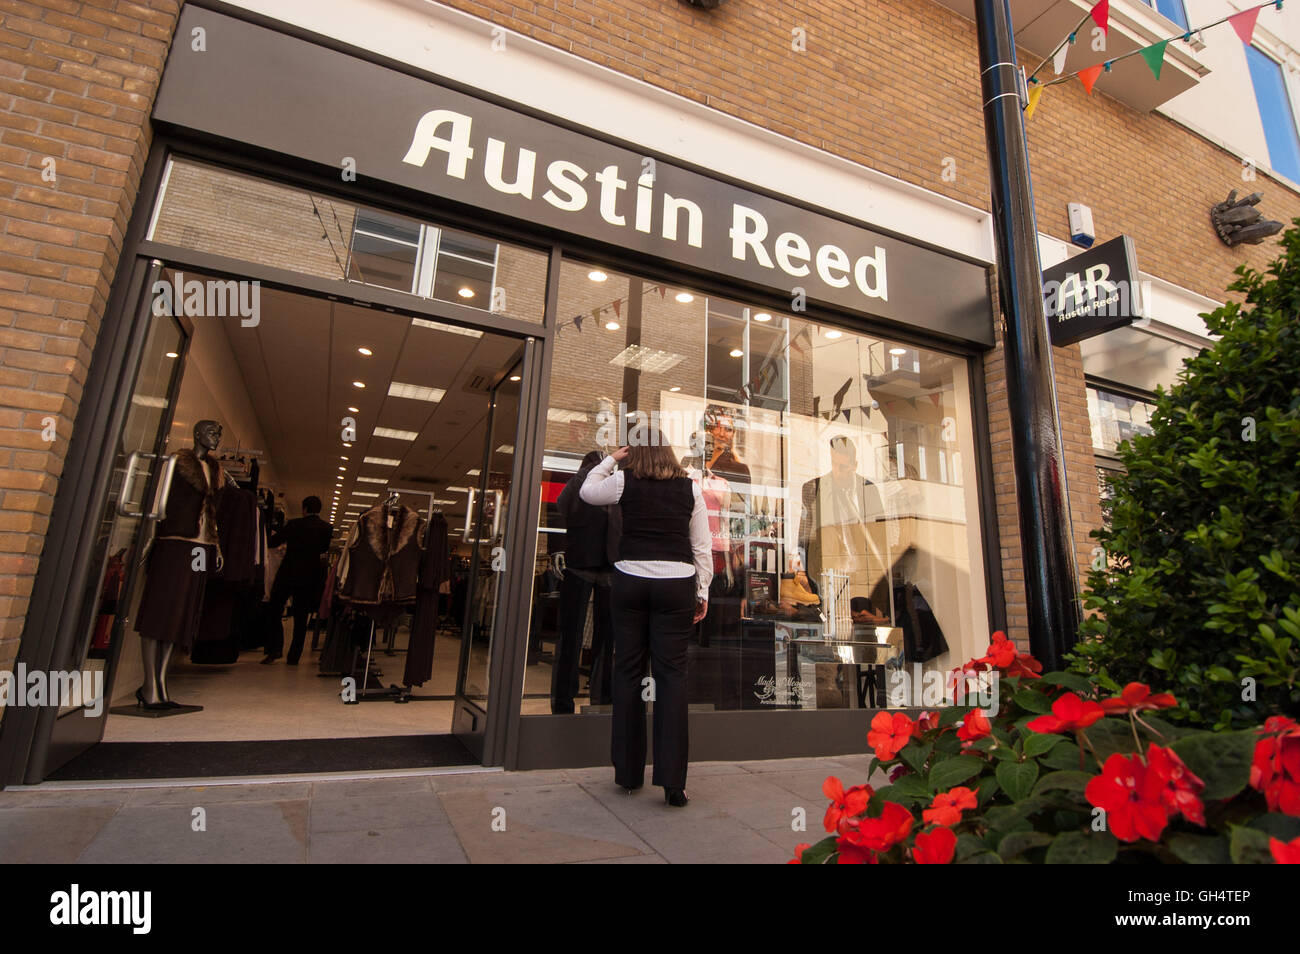 Austin Reed Store Cardiff Bay Stock Photo Alamy